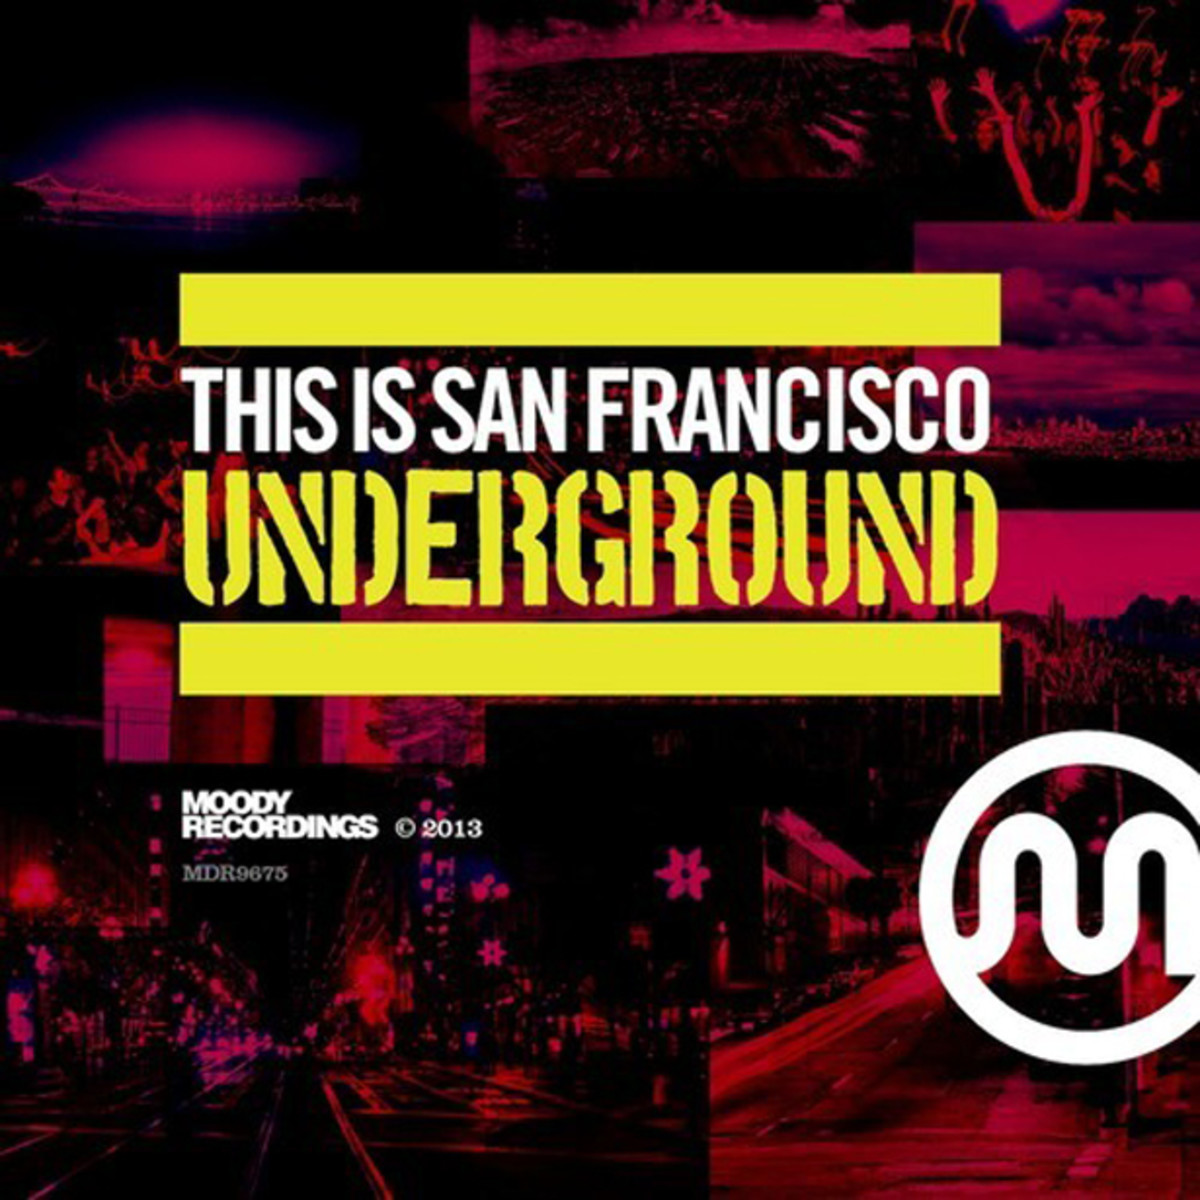 """Moody Recordings Shares """"This Is San Francisco - Underground"""" As A Free Download - File Under 'House Music'"""